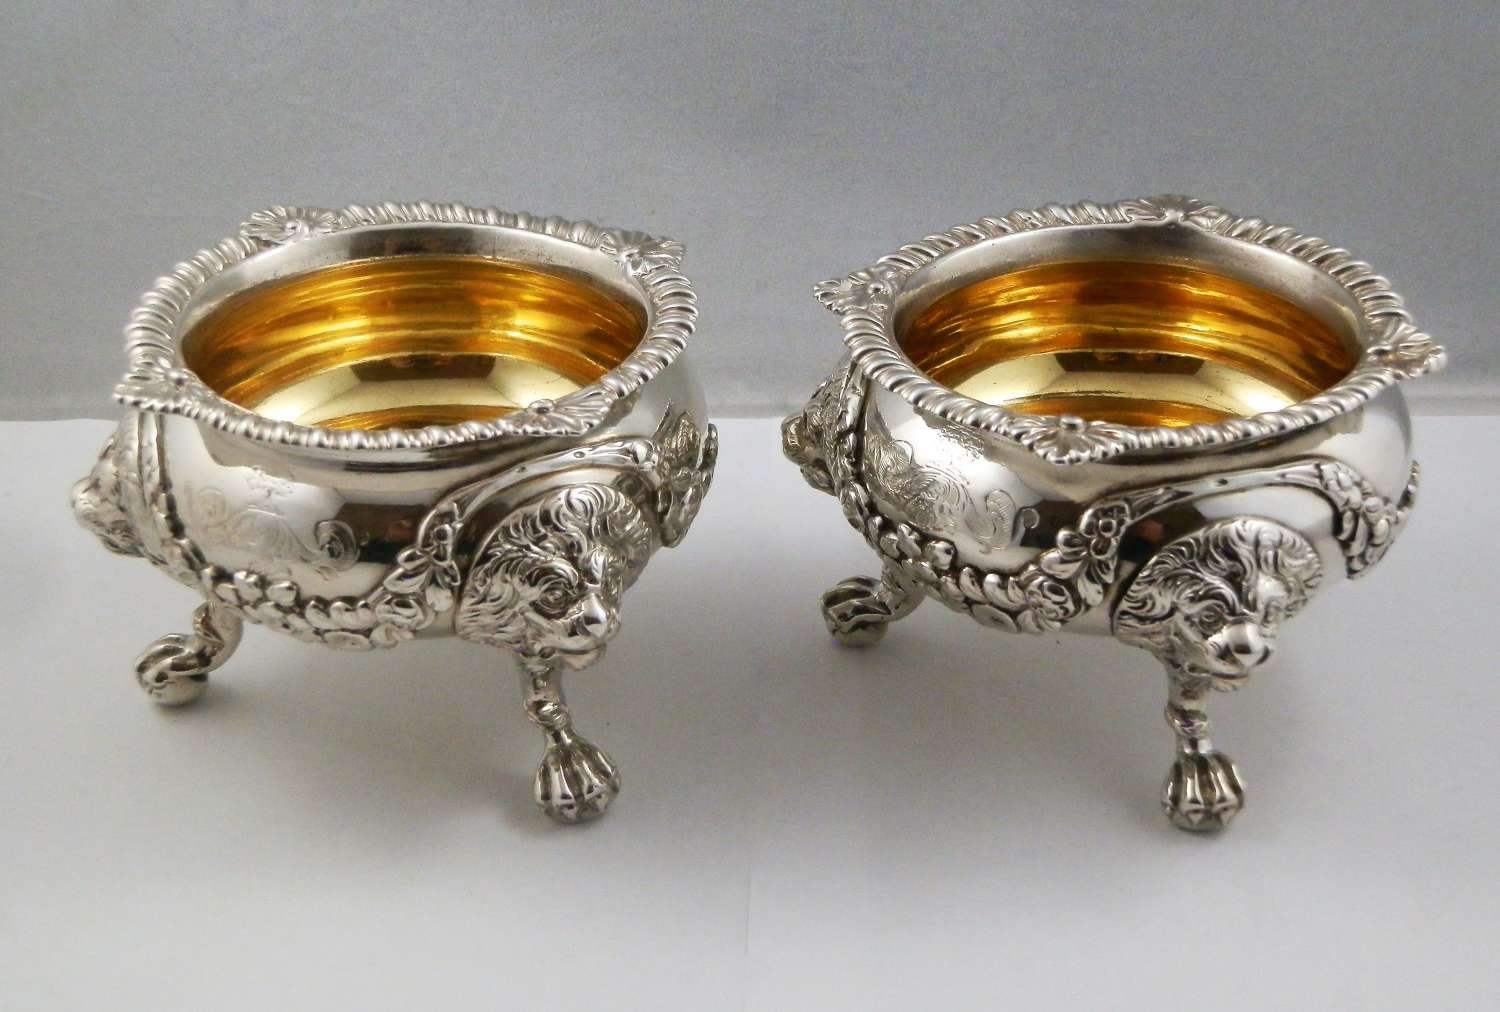 George III pair of extra large salts, London 1813